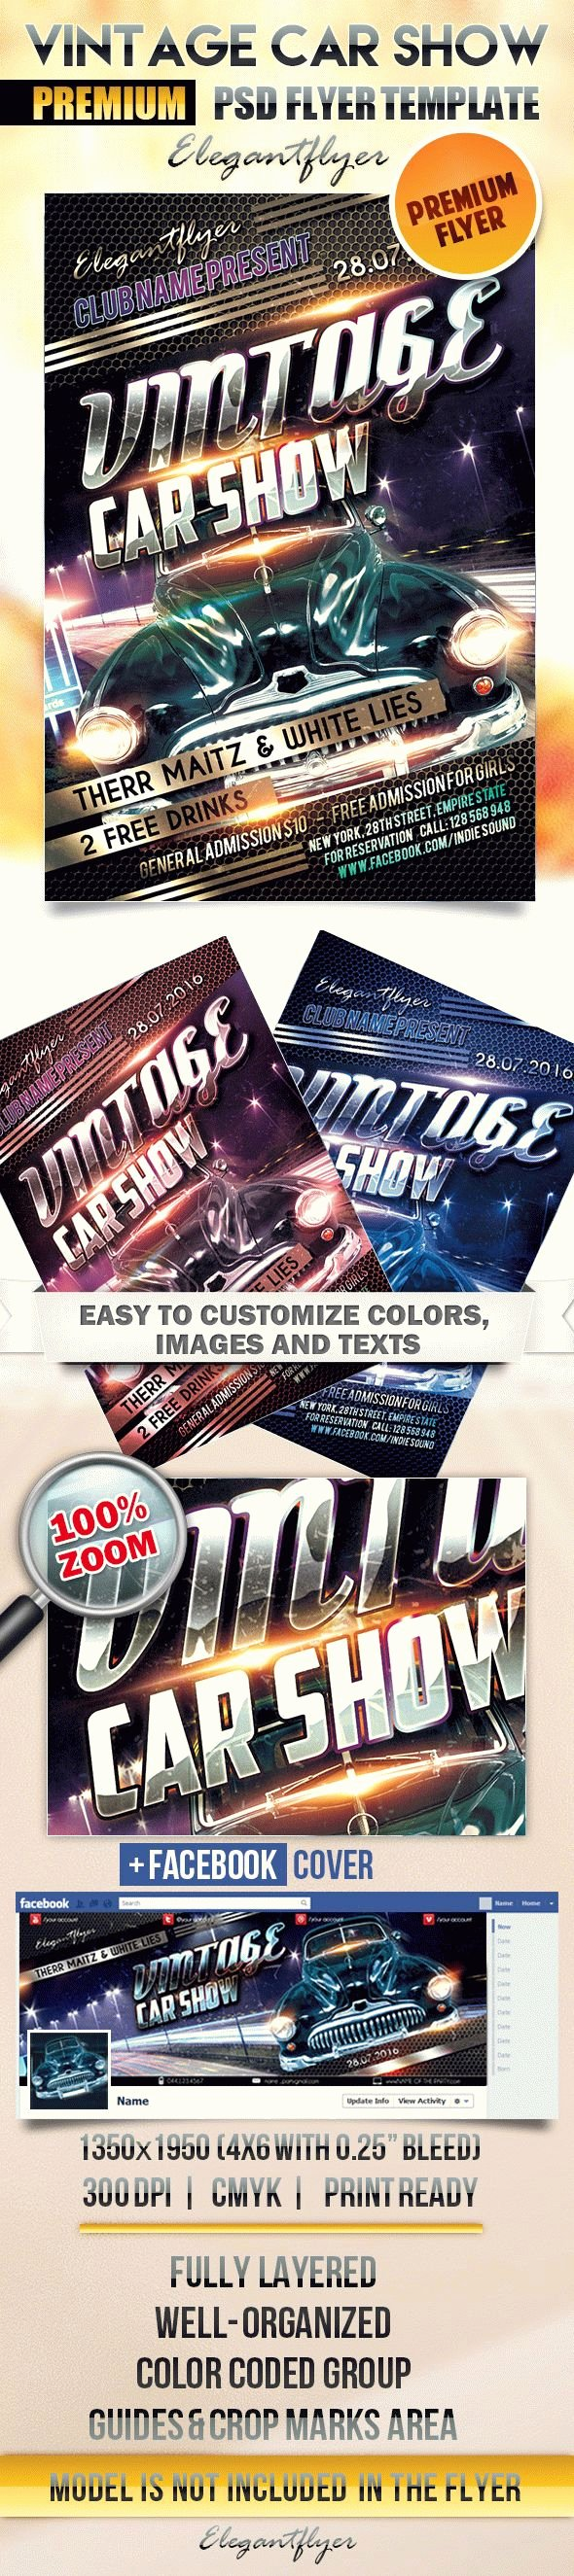 Blank Car Show Flyer New Vintage Car Show Flyer Psd Template Cover